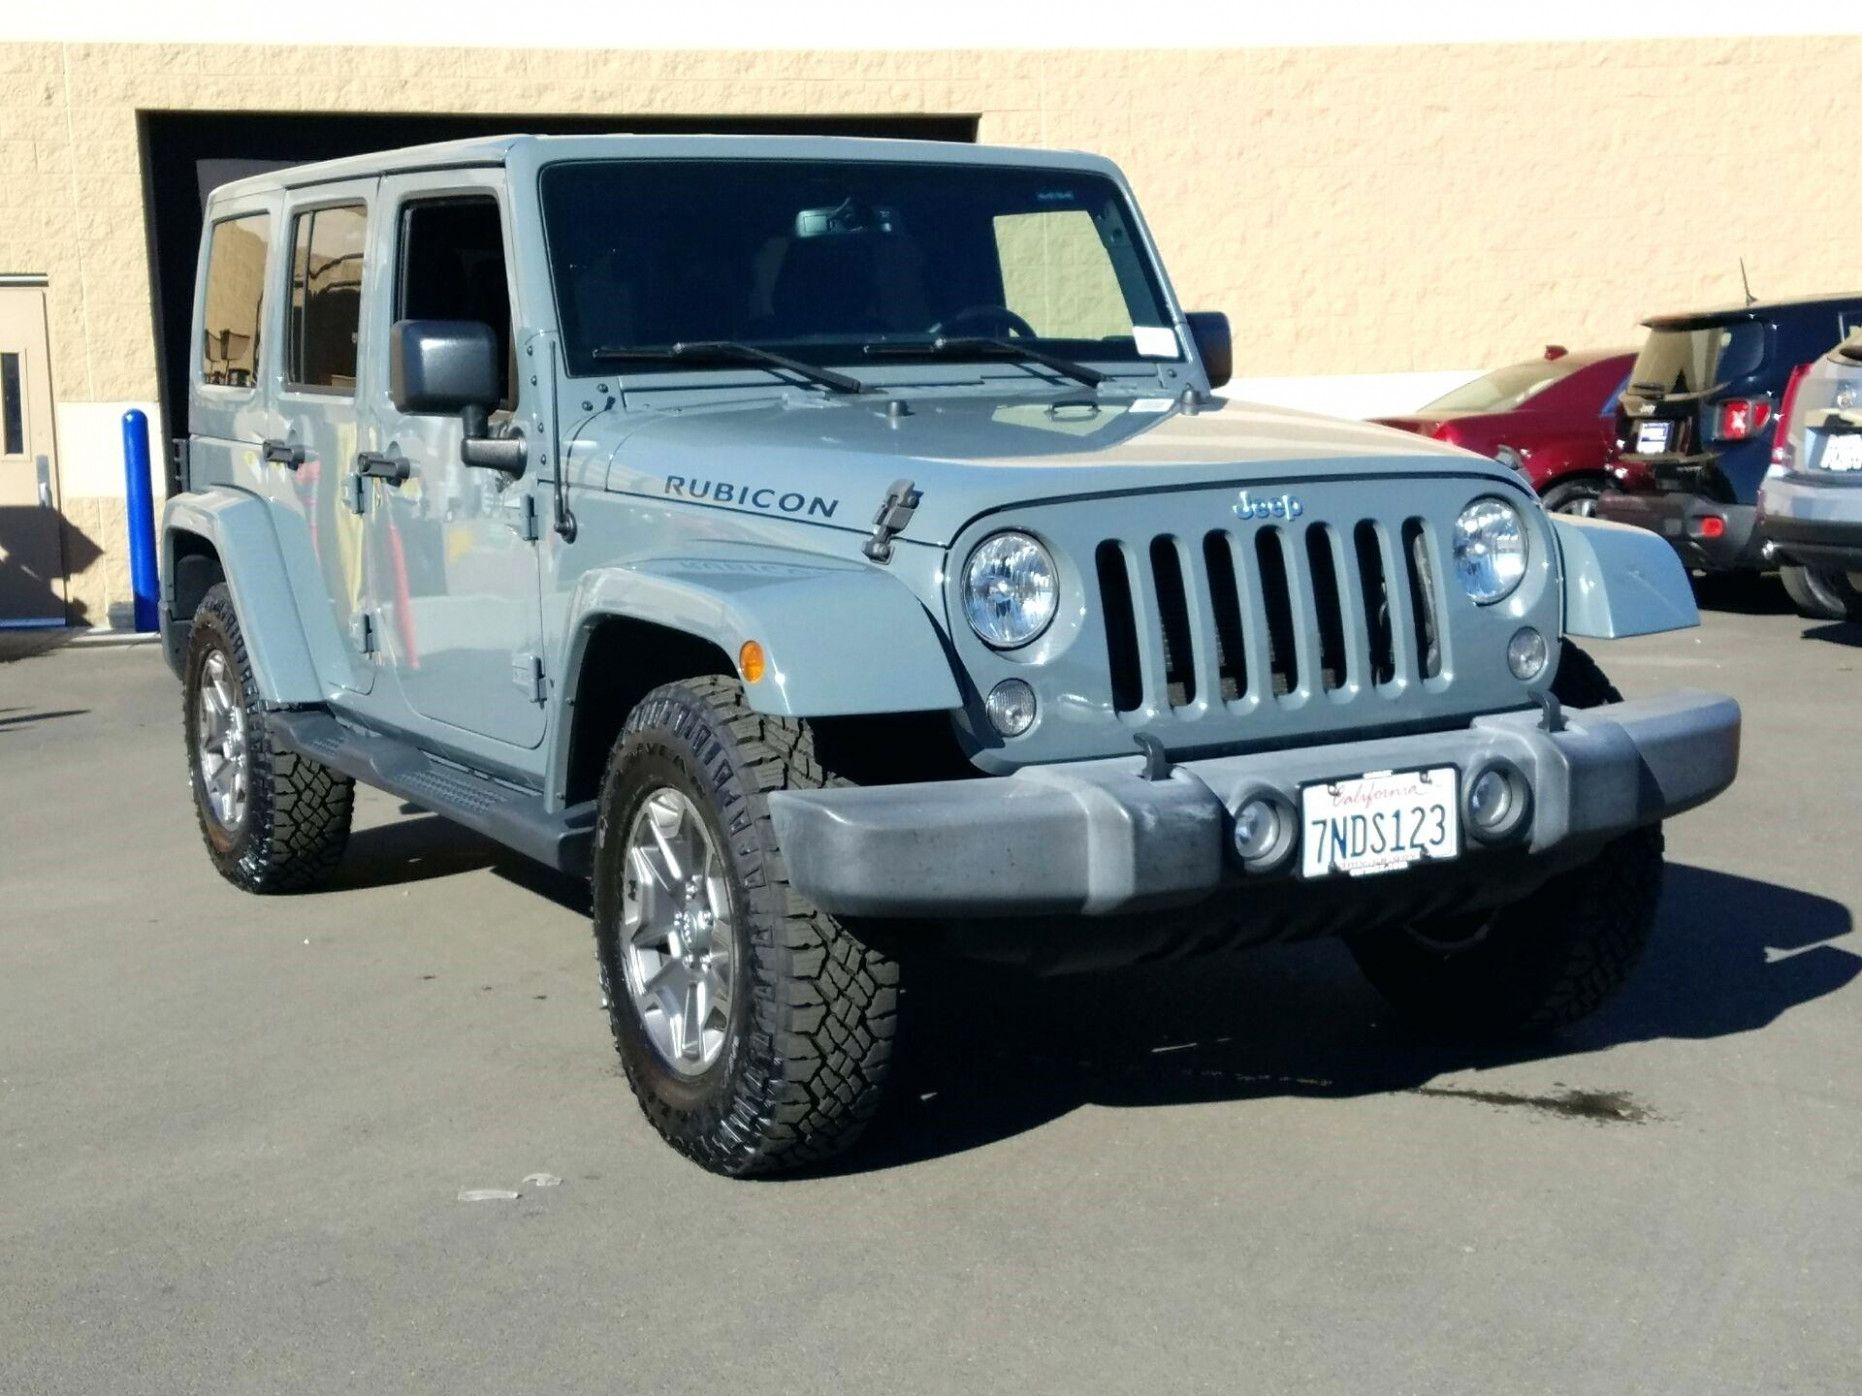 6 New Thoughts About 6 Door Jeep Wrangler For Sale